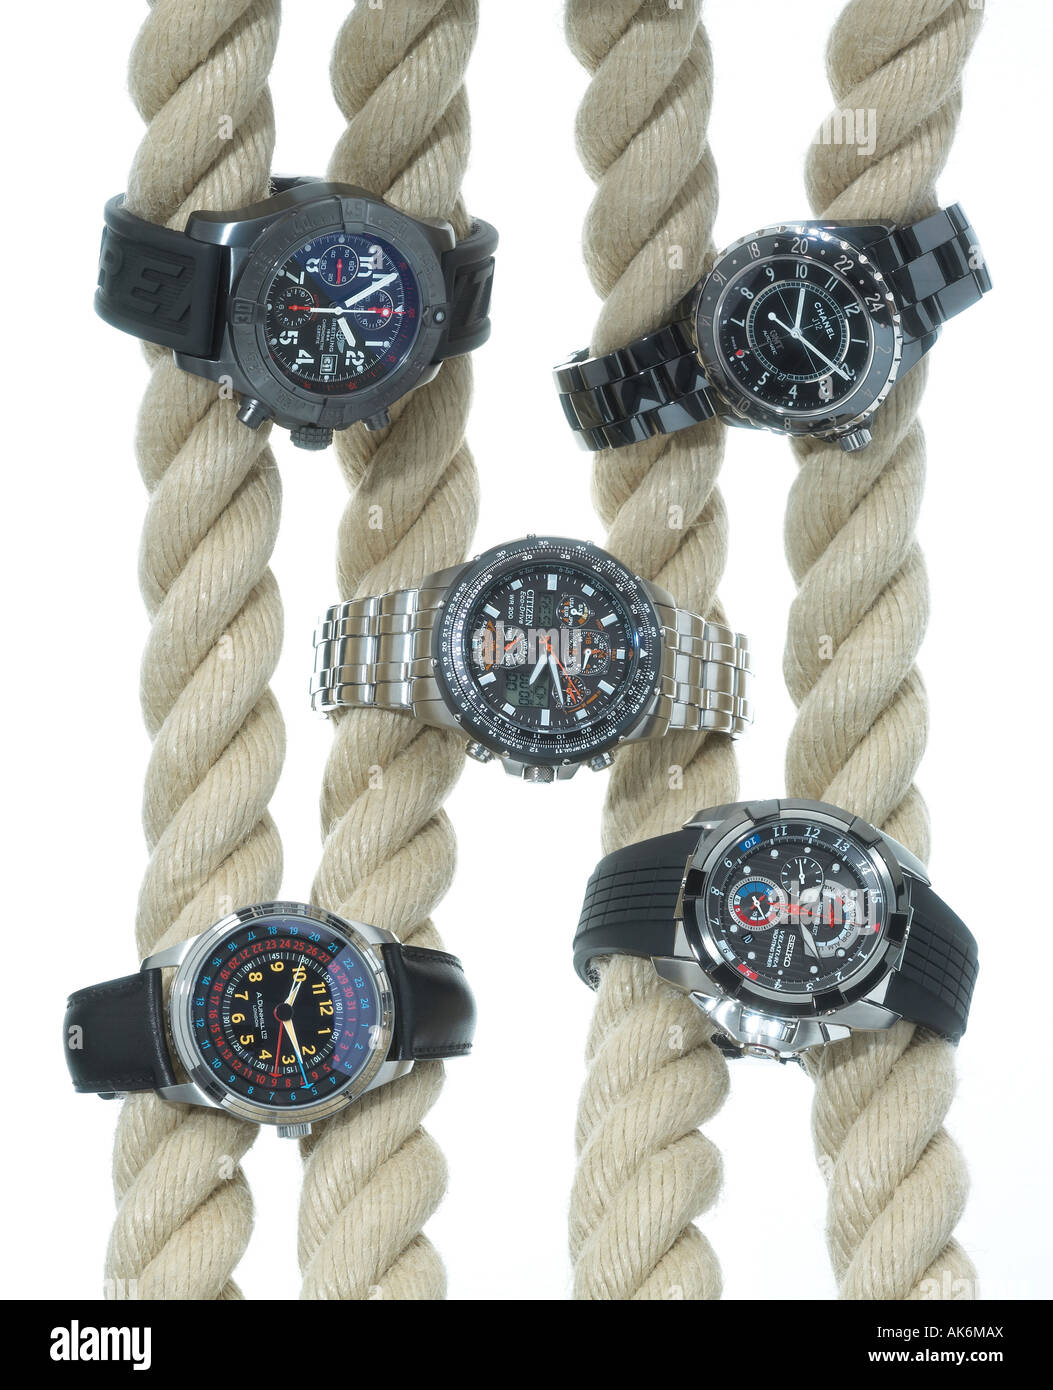 Five wristwatches on ropes - Stock Image